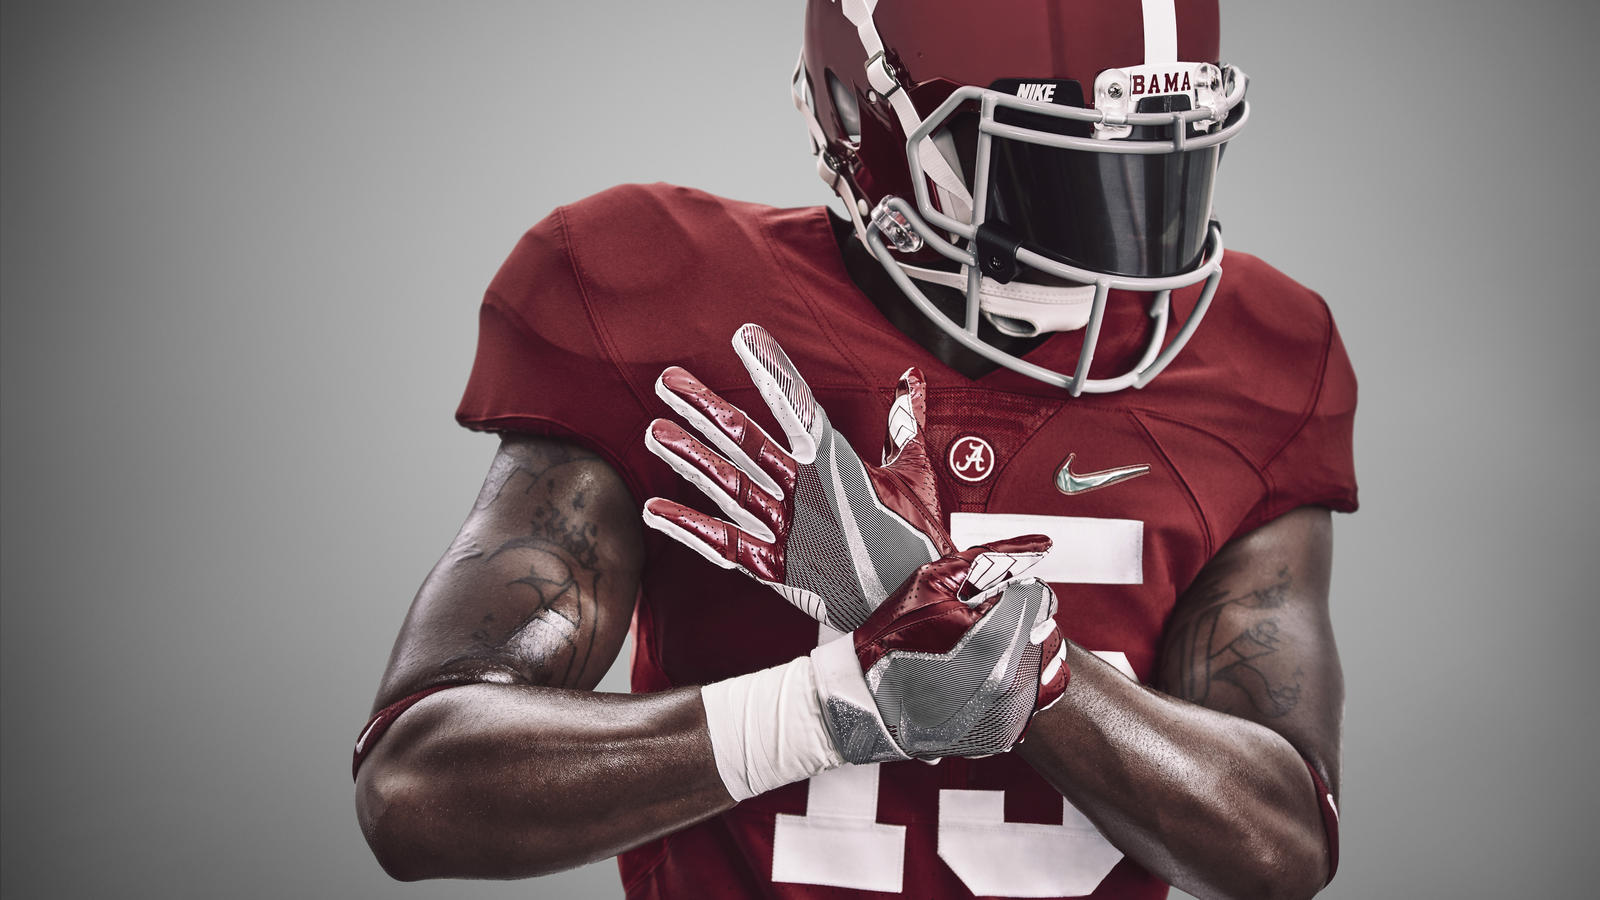 official photos 6583c a2042 Nike Reveals College Football Playoff Uniform Looks - Nike News